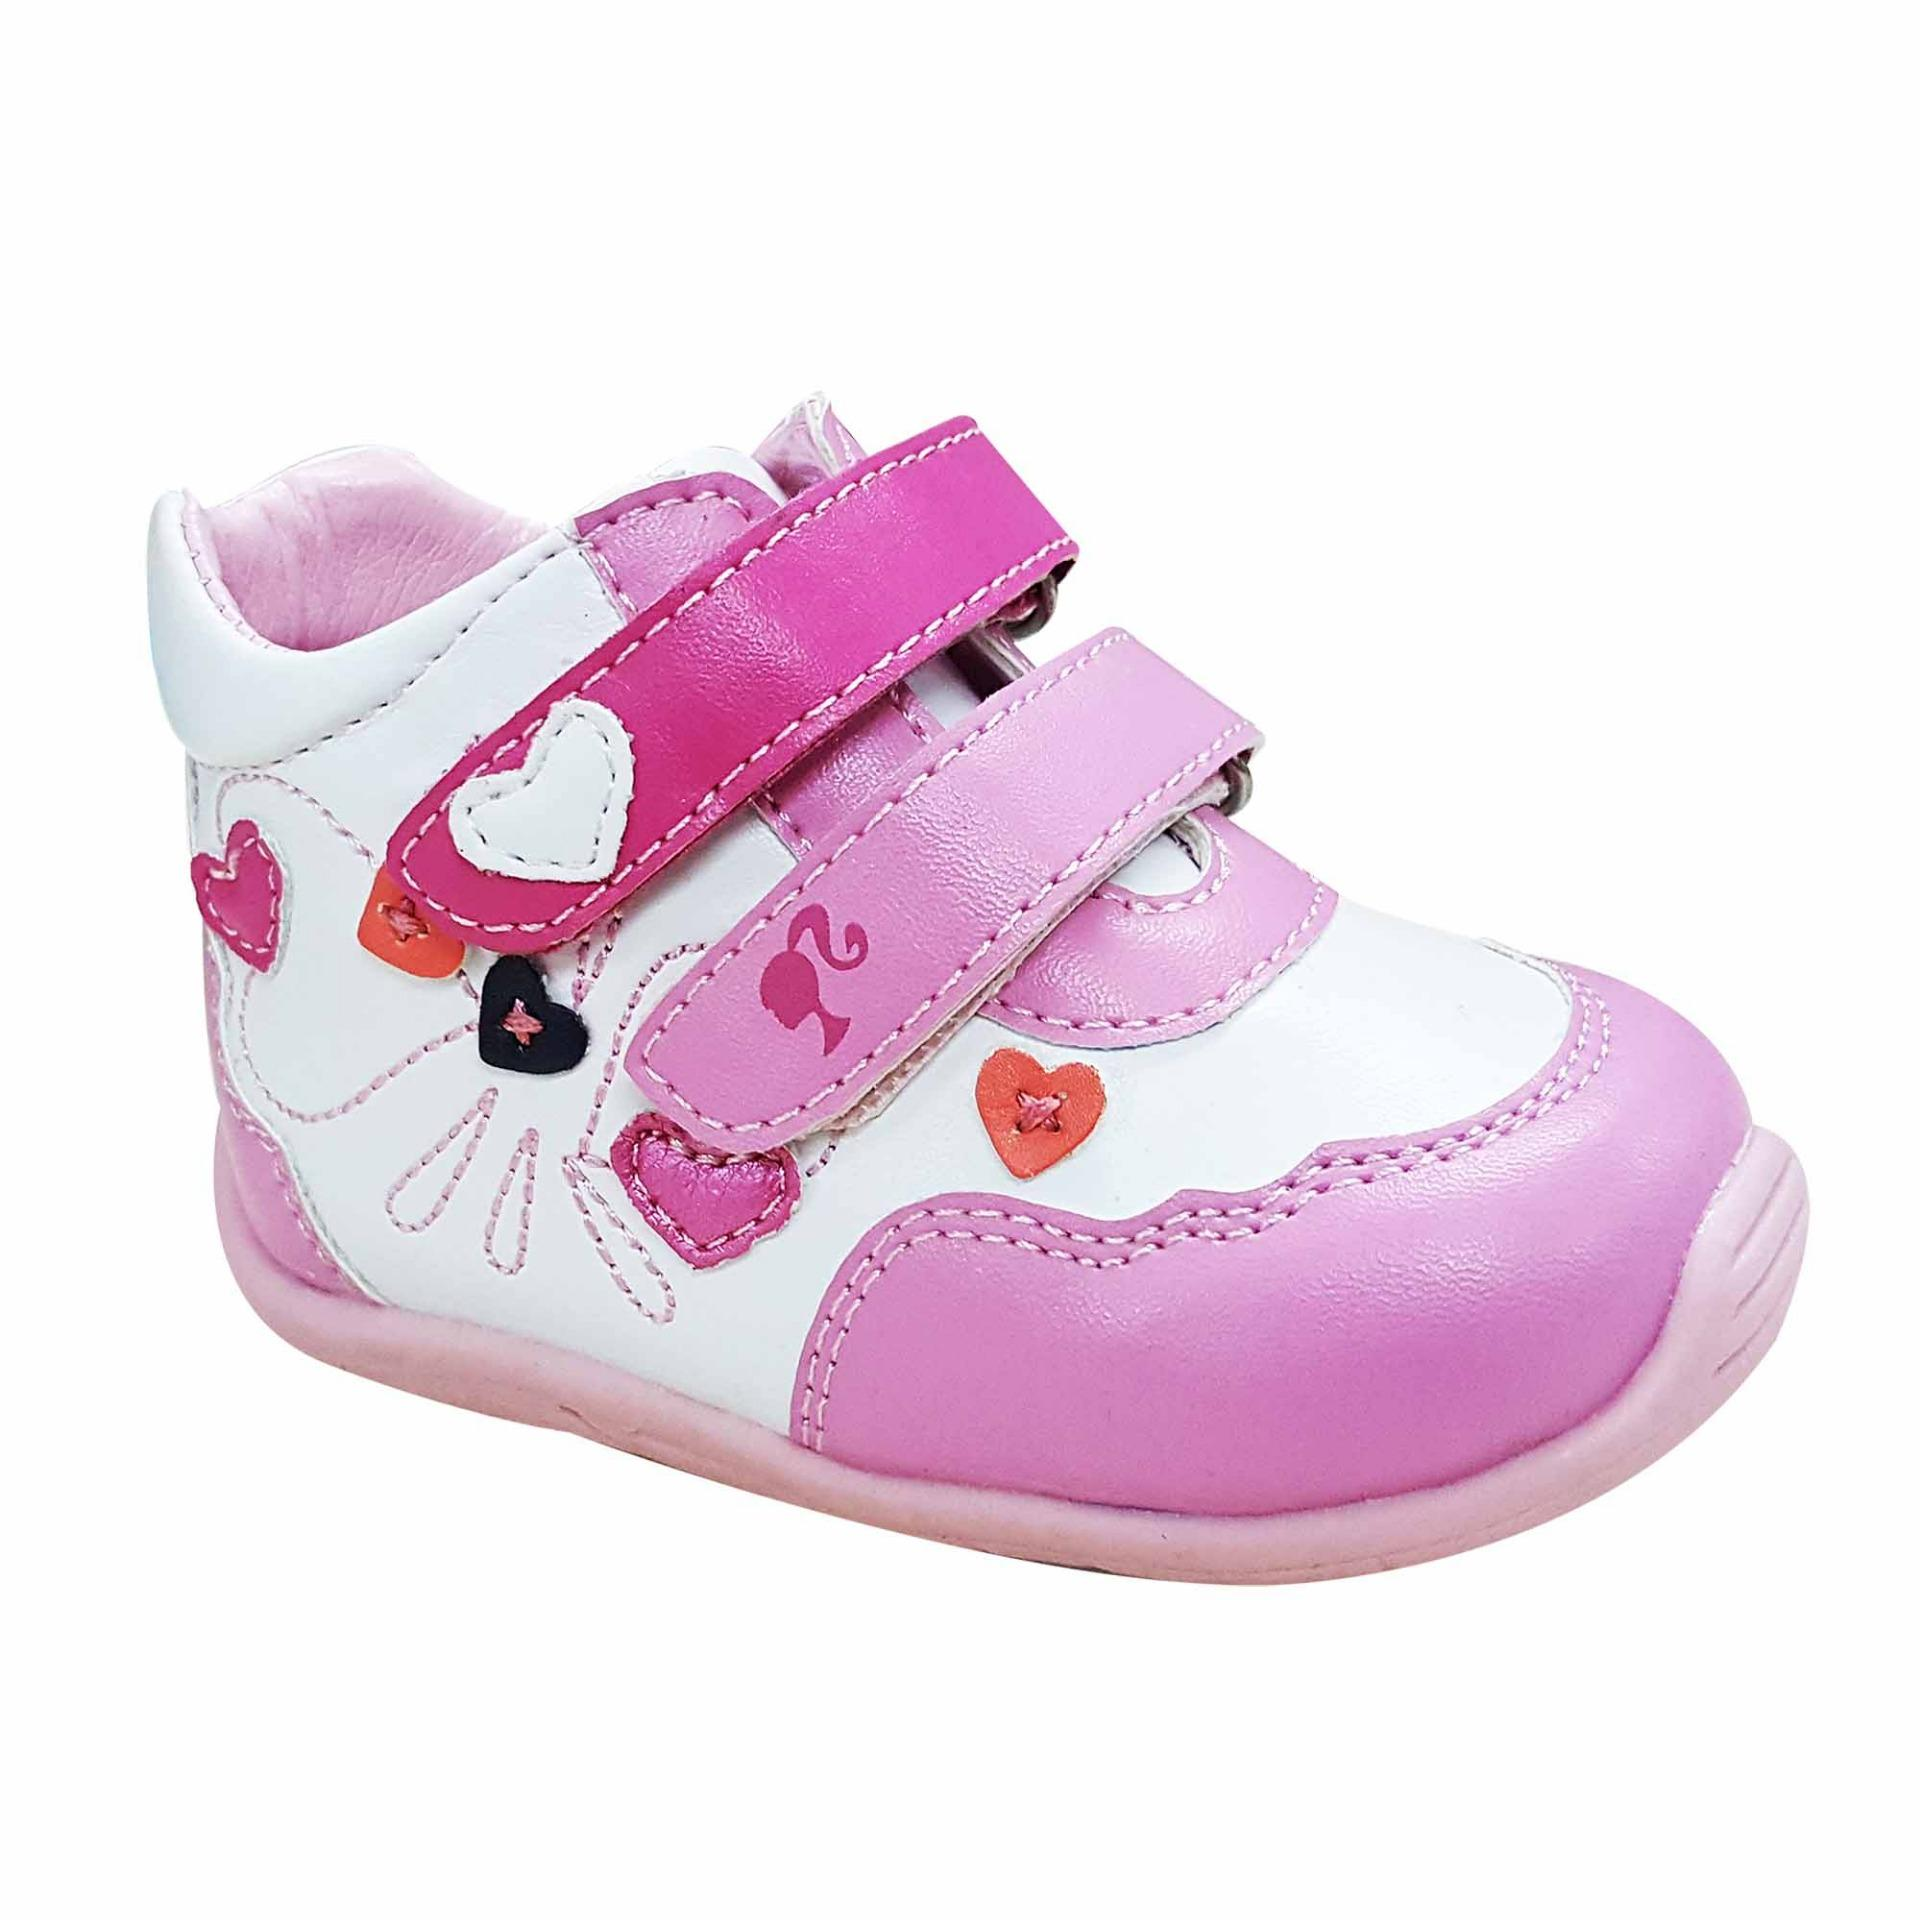 Girls Sports Shoes for sale Sports Shoes for Baby Girls online